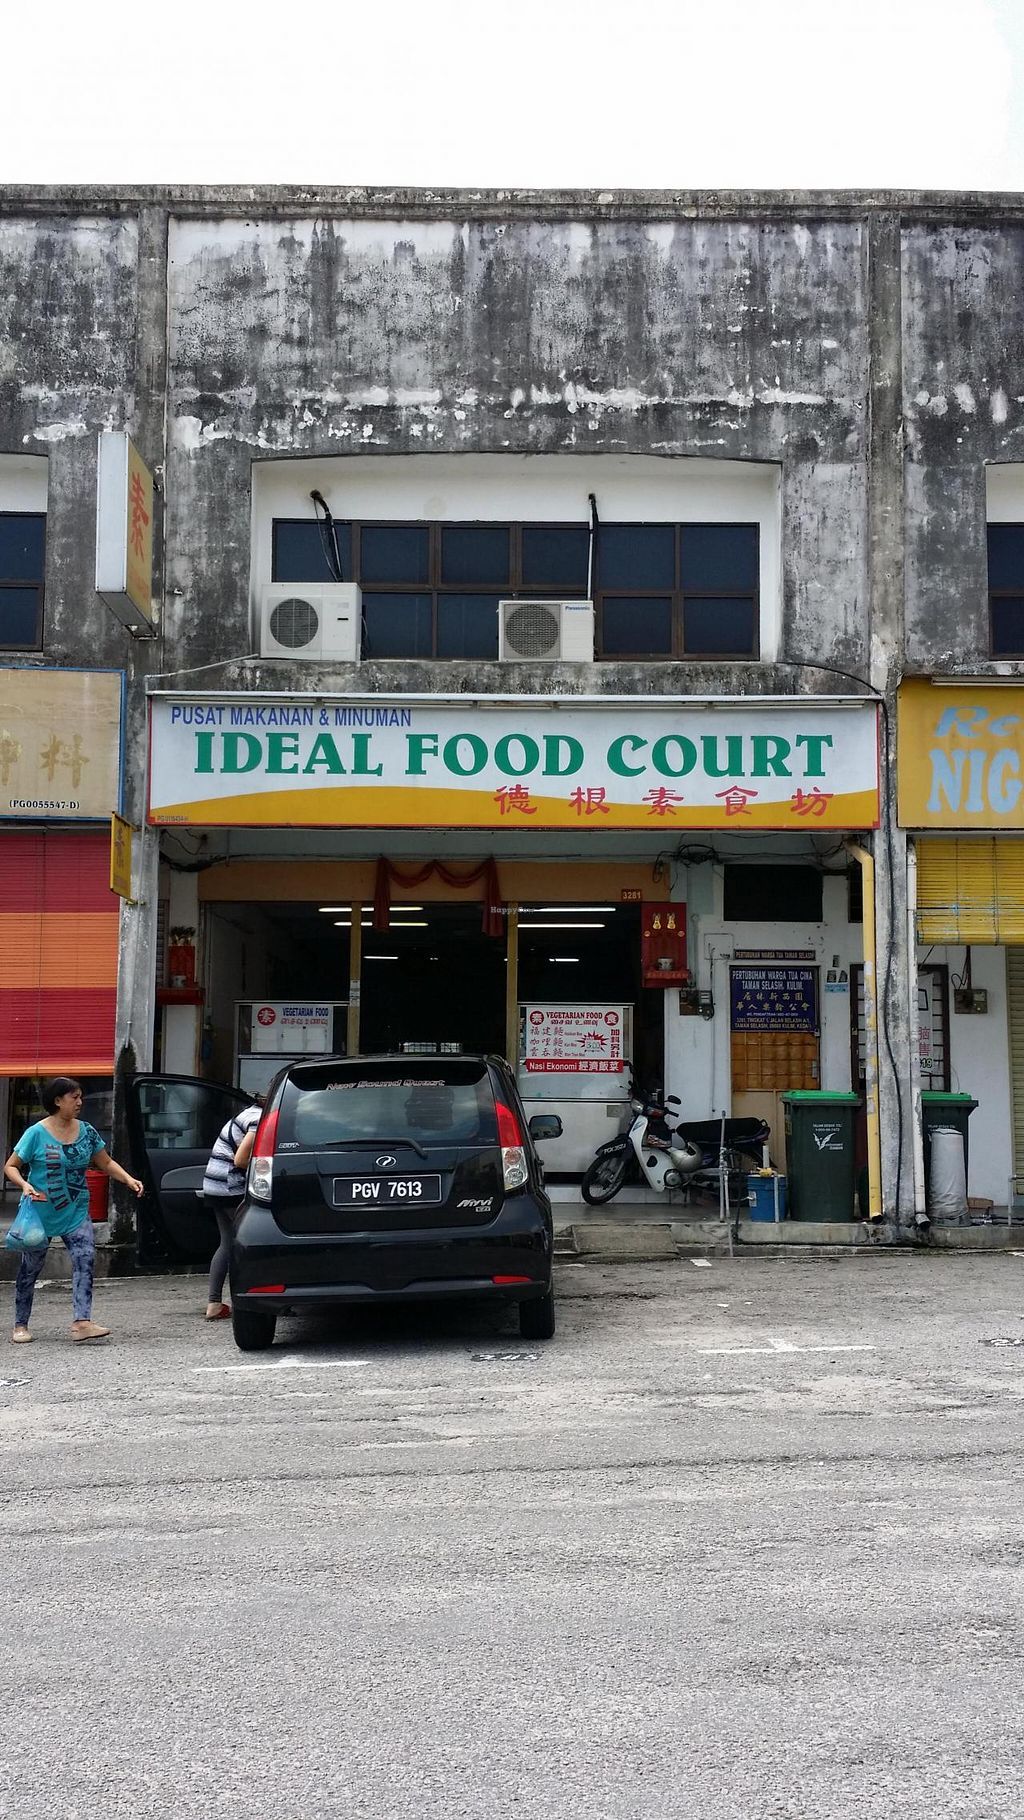 """Photo of Ideal Vegetarian Food Court  by <a href=""""/members/profile/walter007"""">walter007</a> <br/>Shop <br/> April 29, 2014  - <a href='/contact/abuse/image/46917/68916'>Report</a>"""